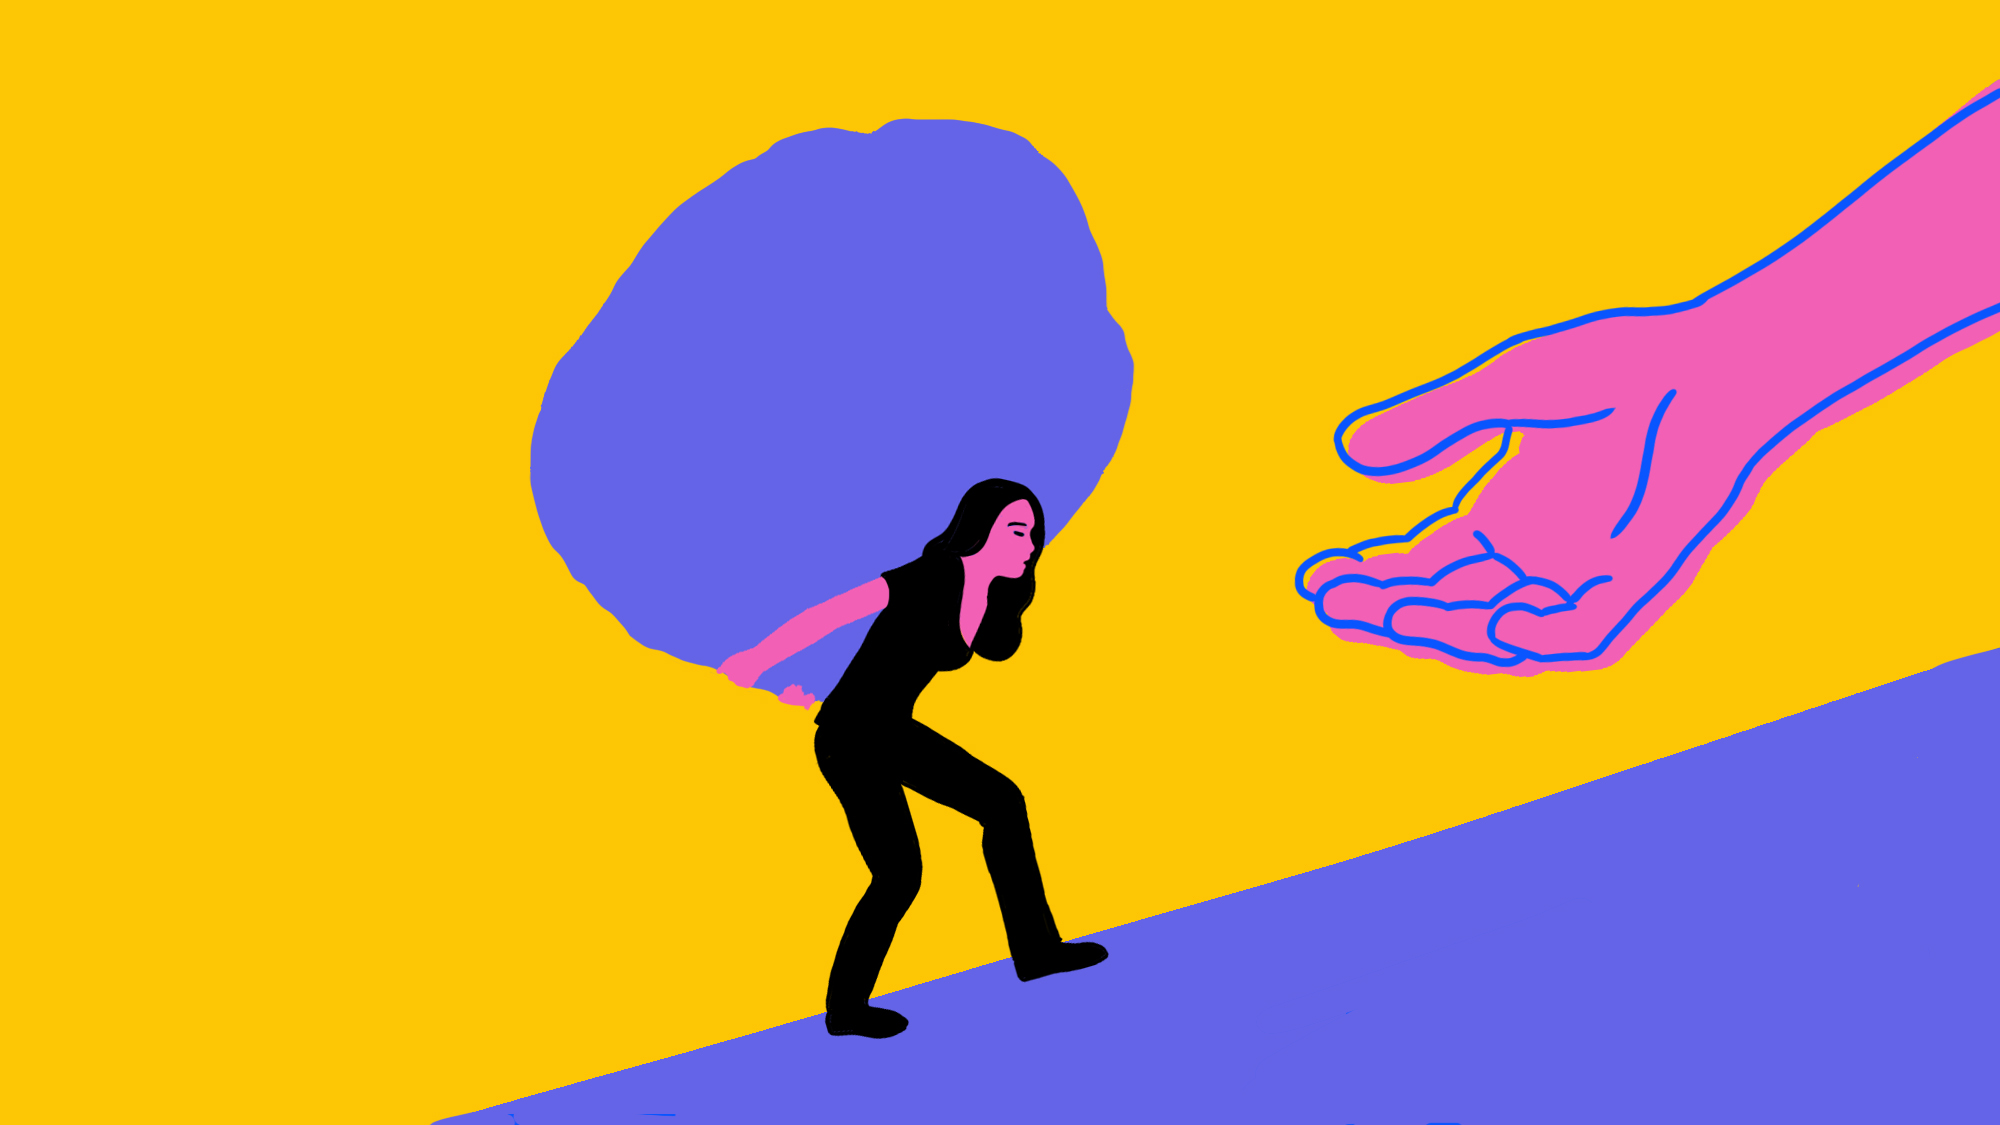 Illustration of a woman carrying a heavy load with an open hand in front of her to show struggle